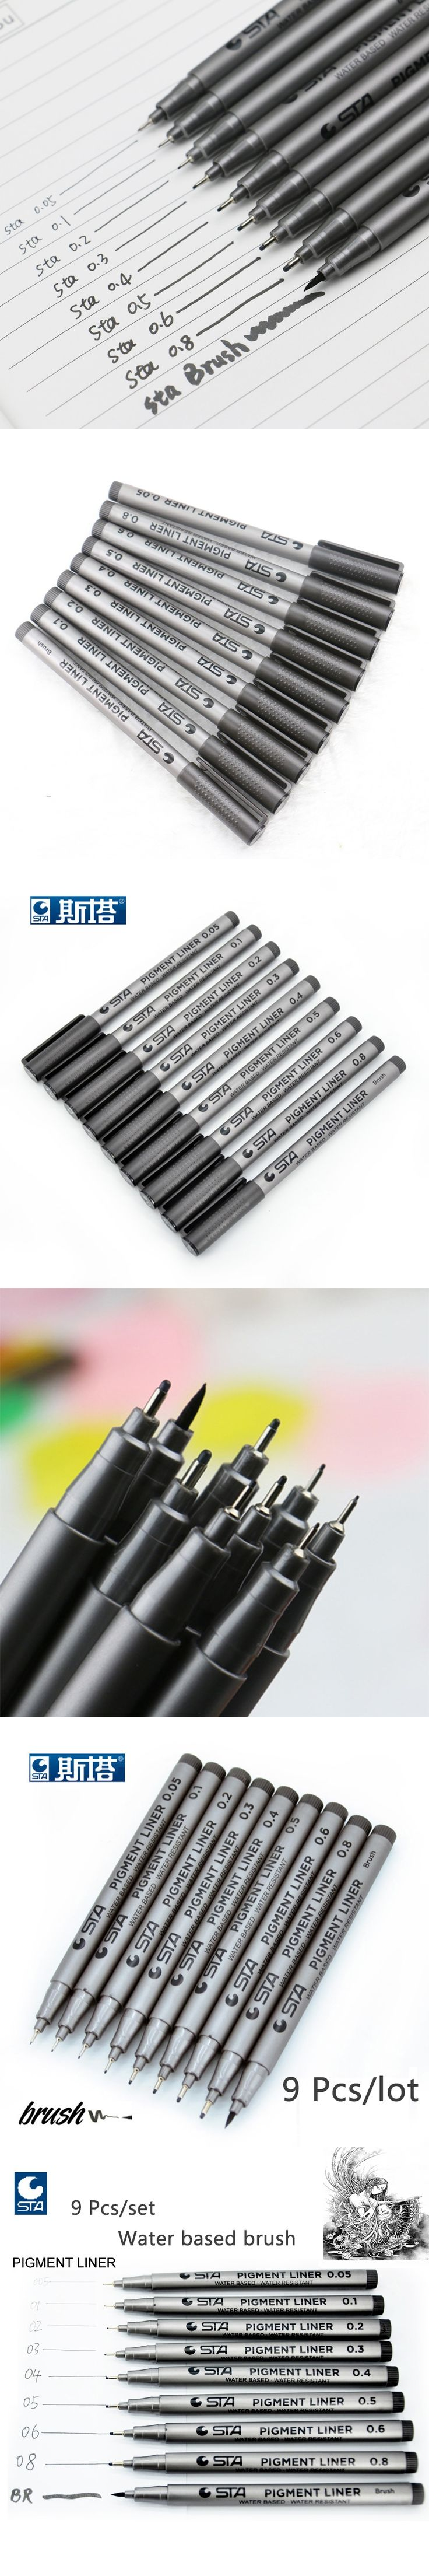 STA9pcs/set Sketch Art Marker Pen Different Tip Sizes Black Pigment Liner Water Based For Art Supplies Stationery